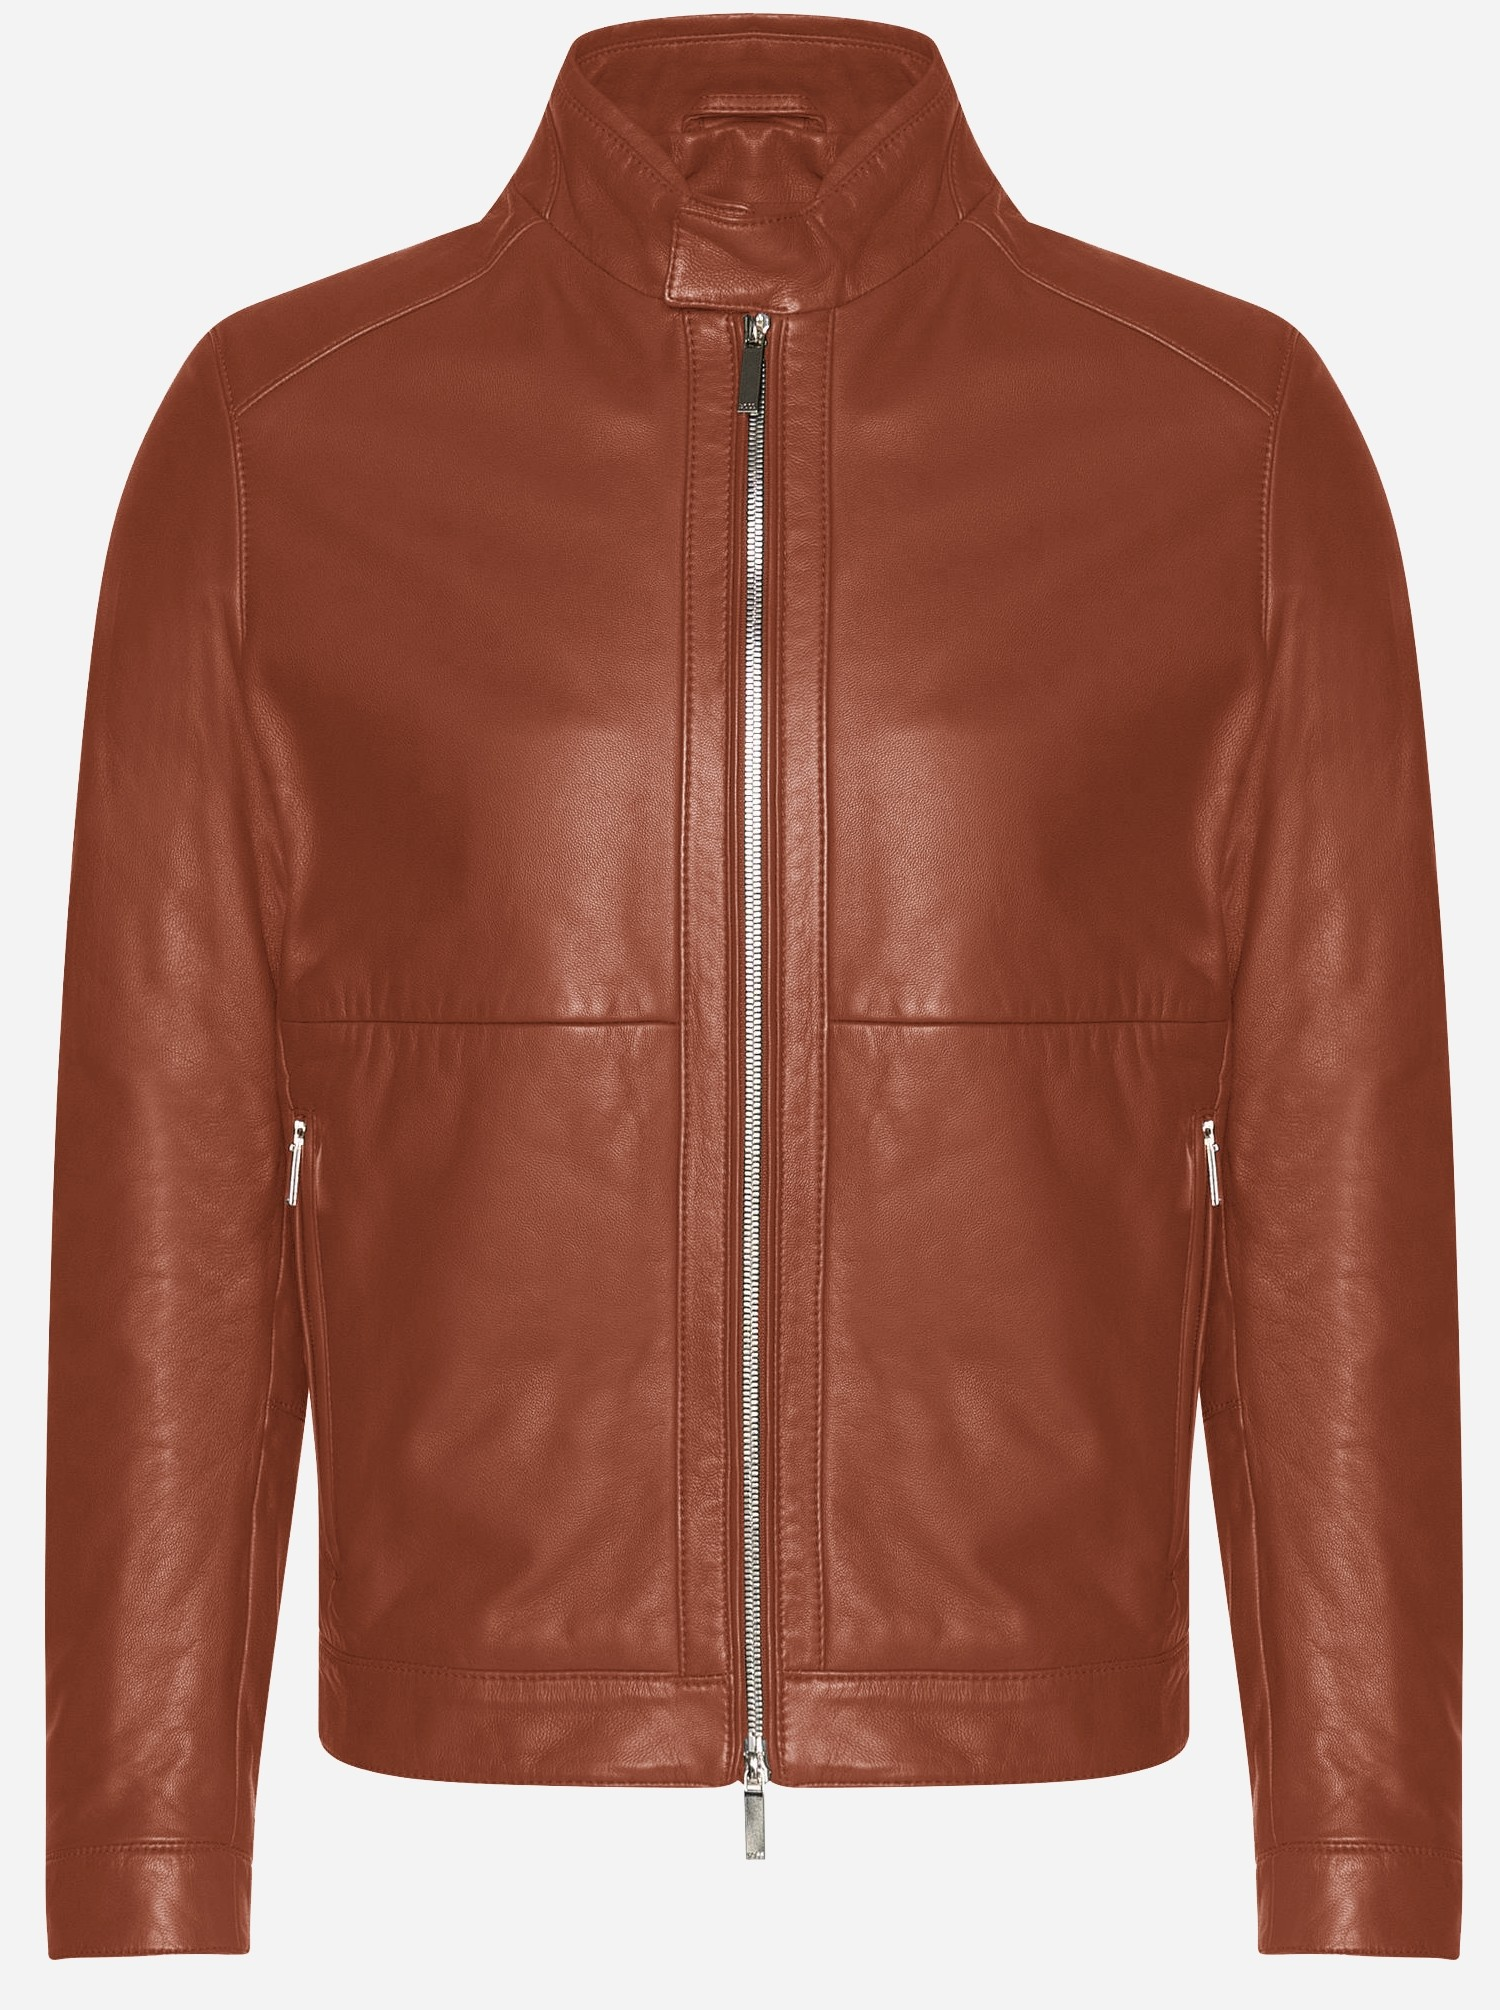 Russet Leather Jacket